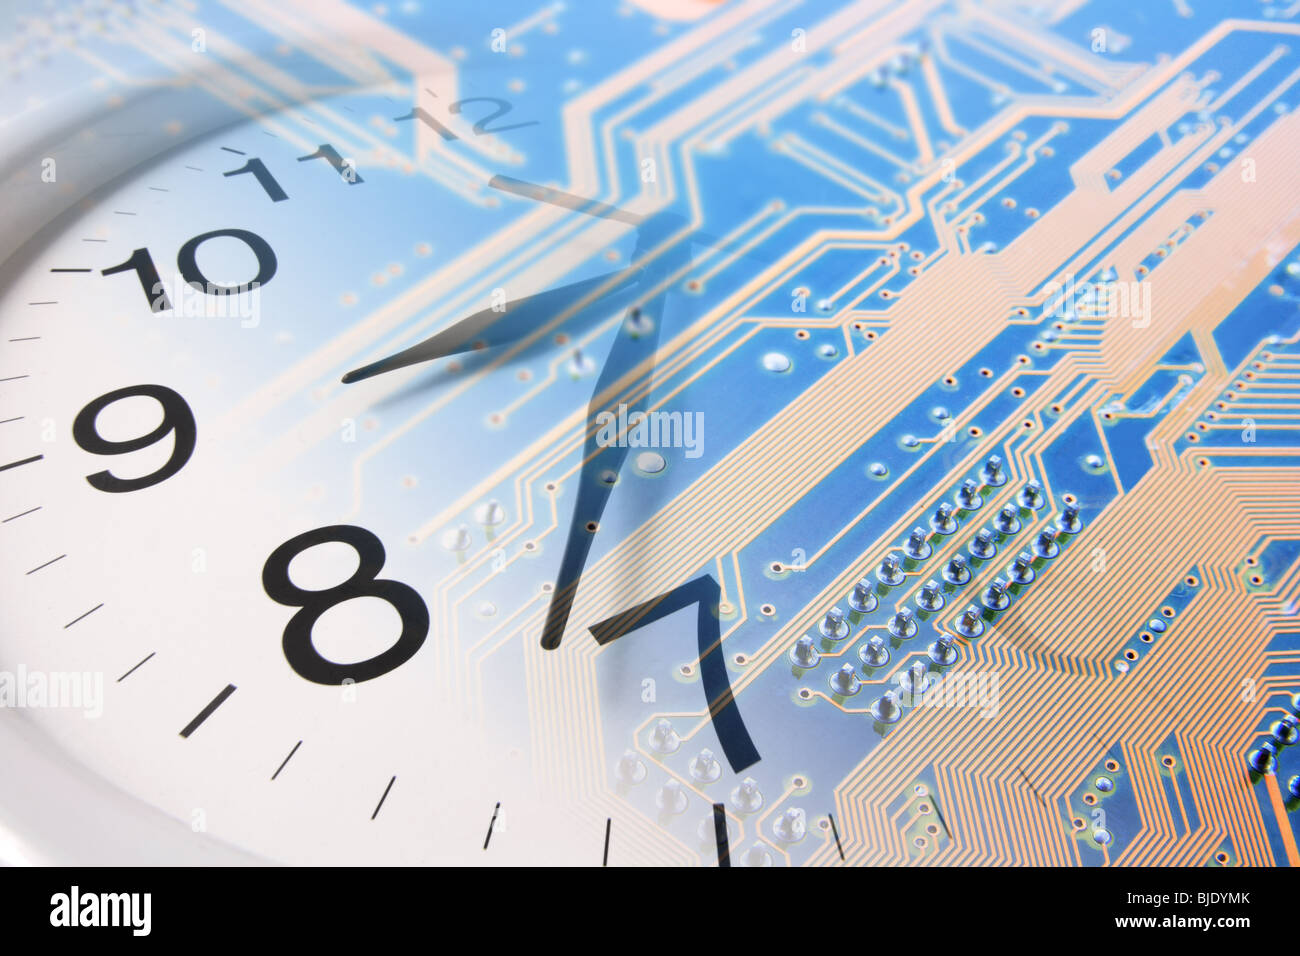 Clock Parts Stock Photos Images Alamy Circuit Board Design Square Wall And Image